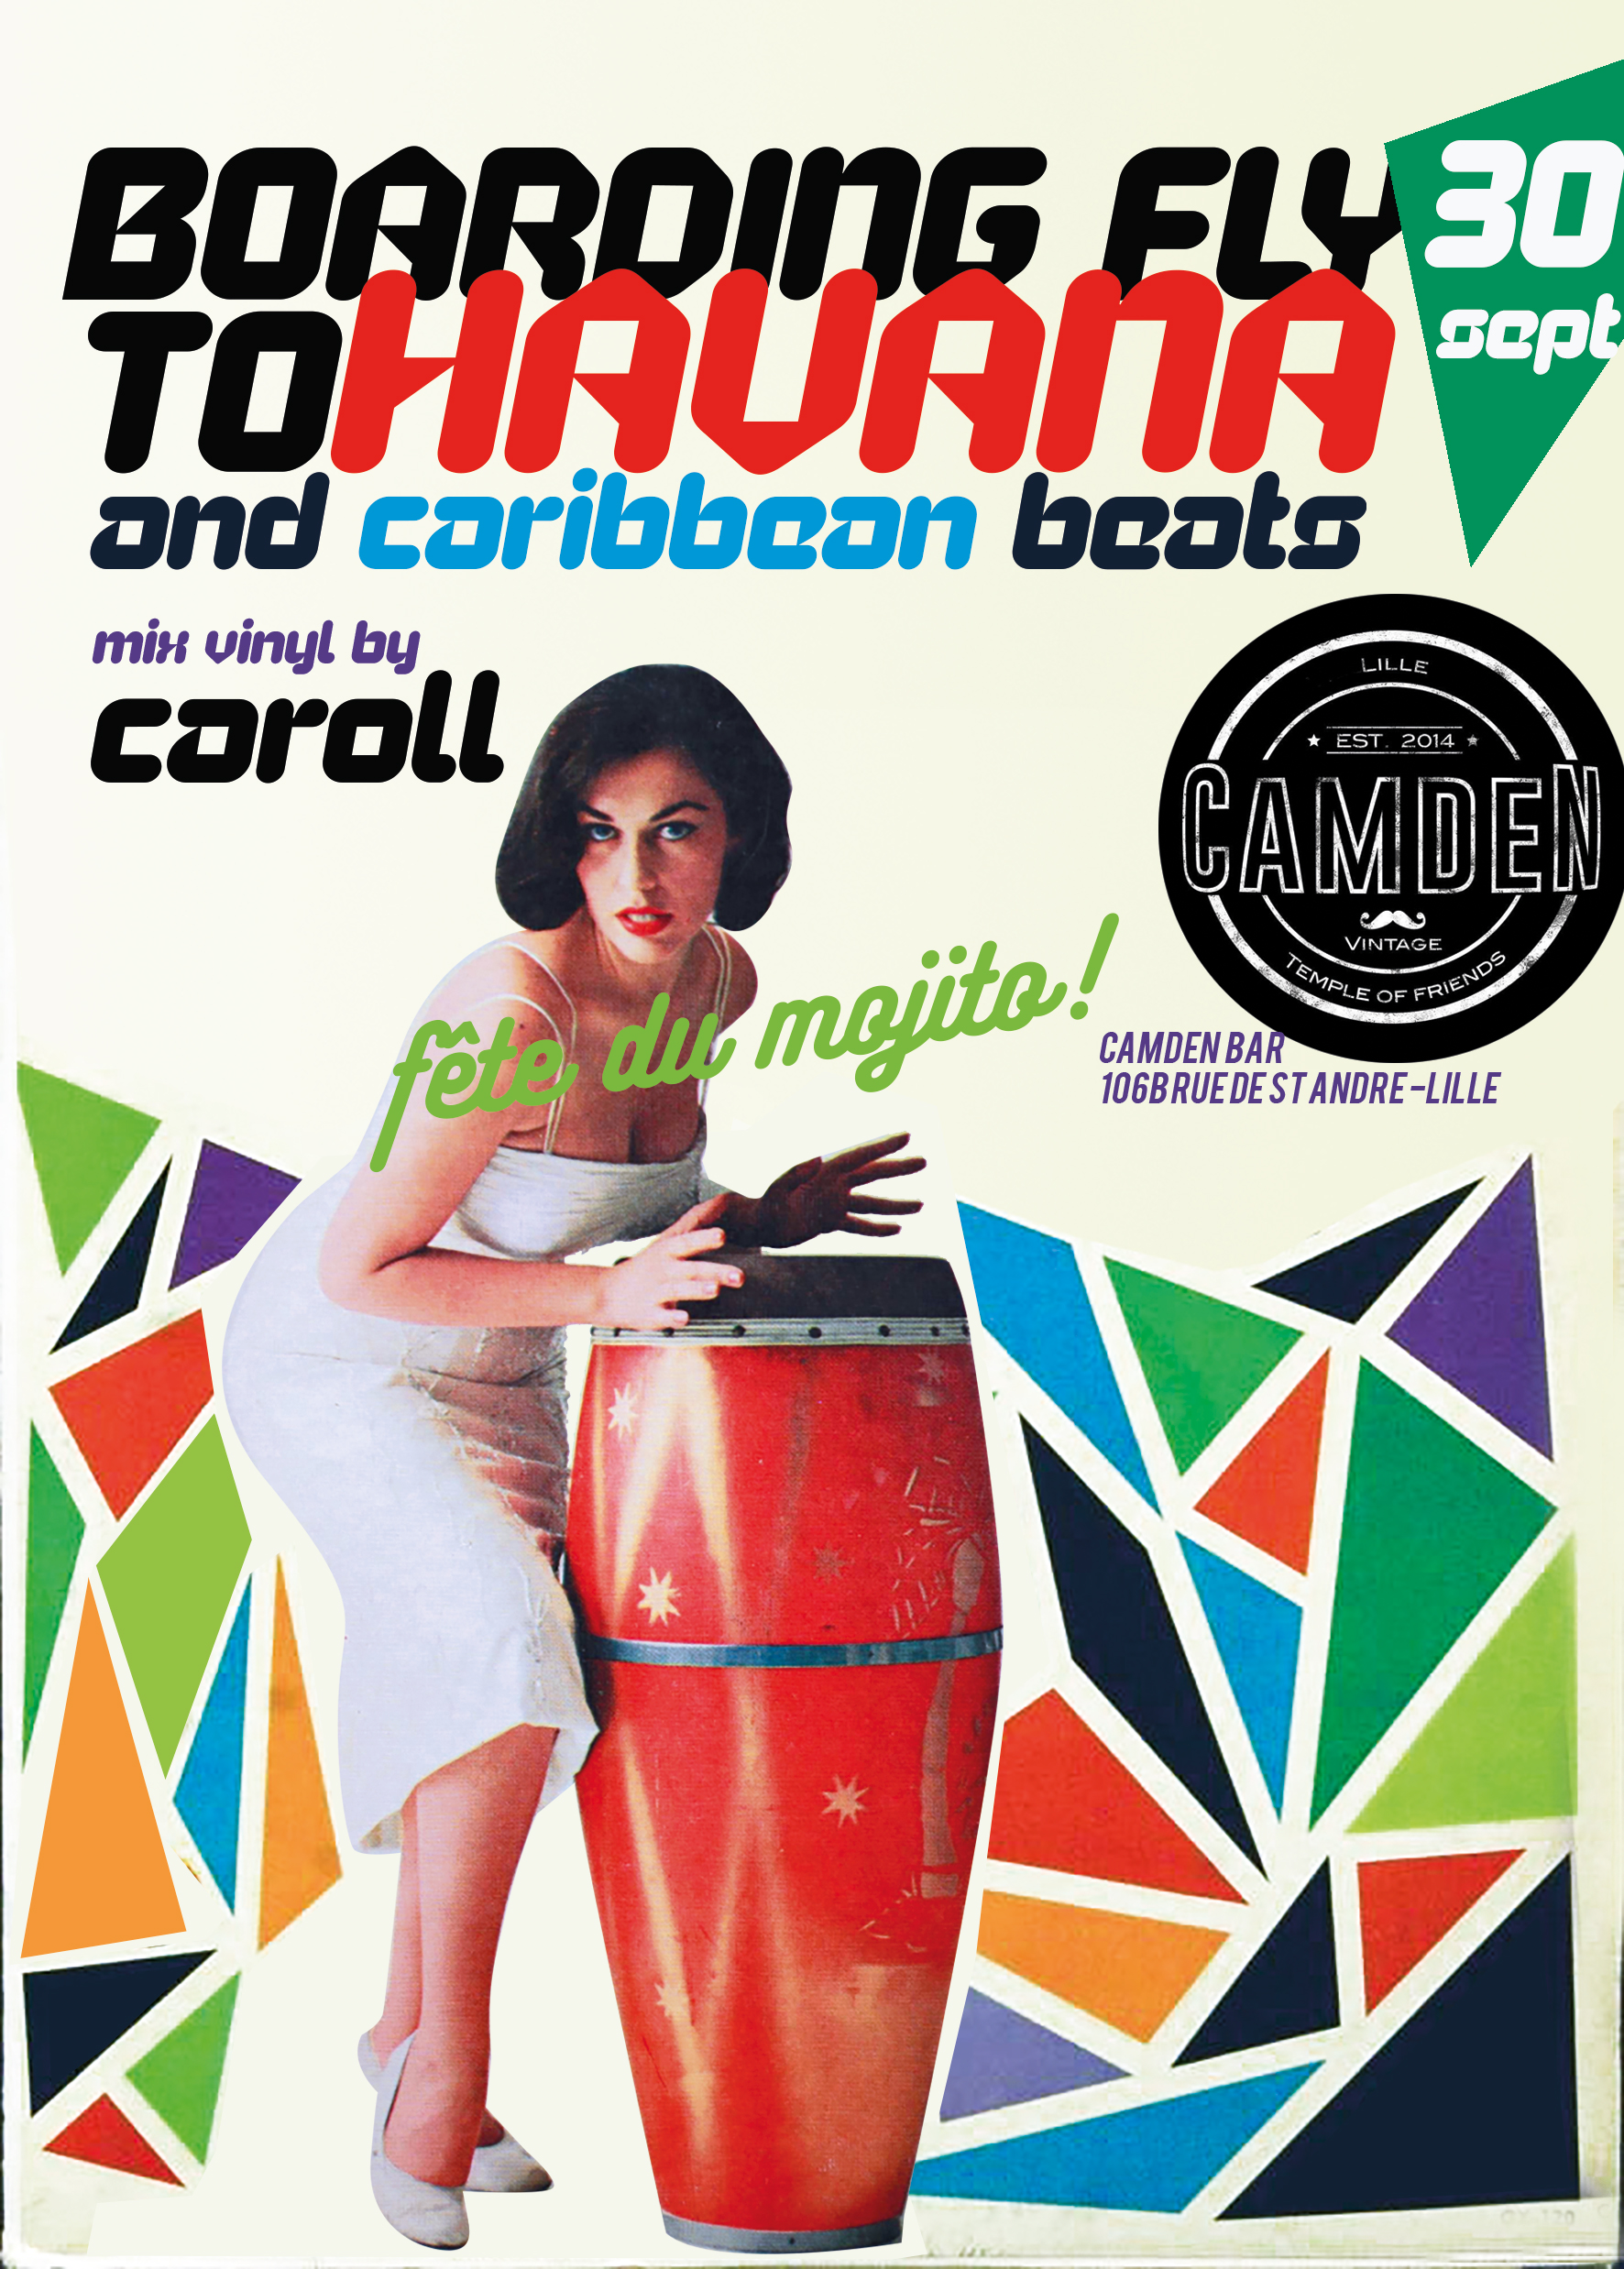 Fête du Mojito – Boarding fly to Havana mix by Caroll